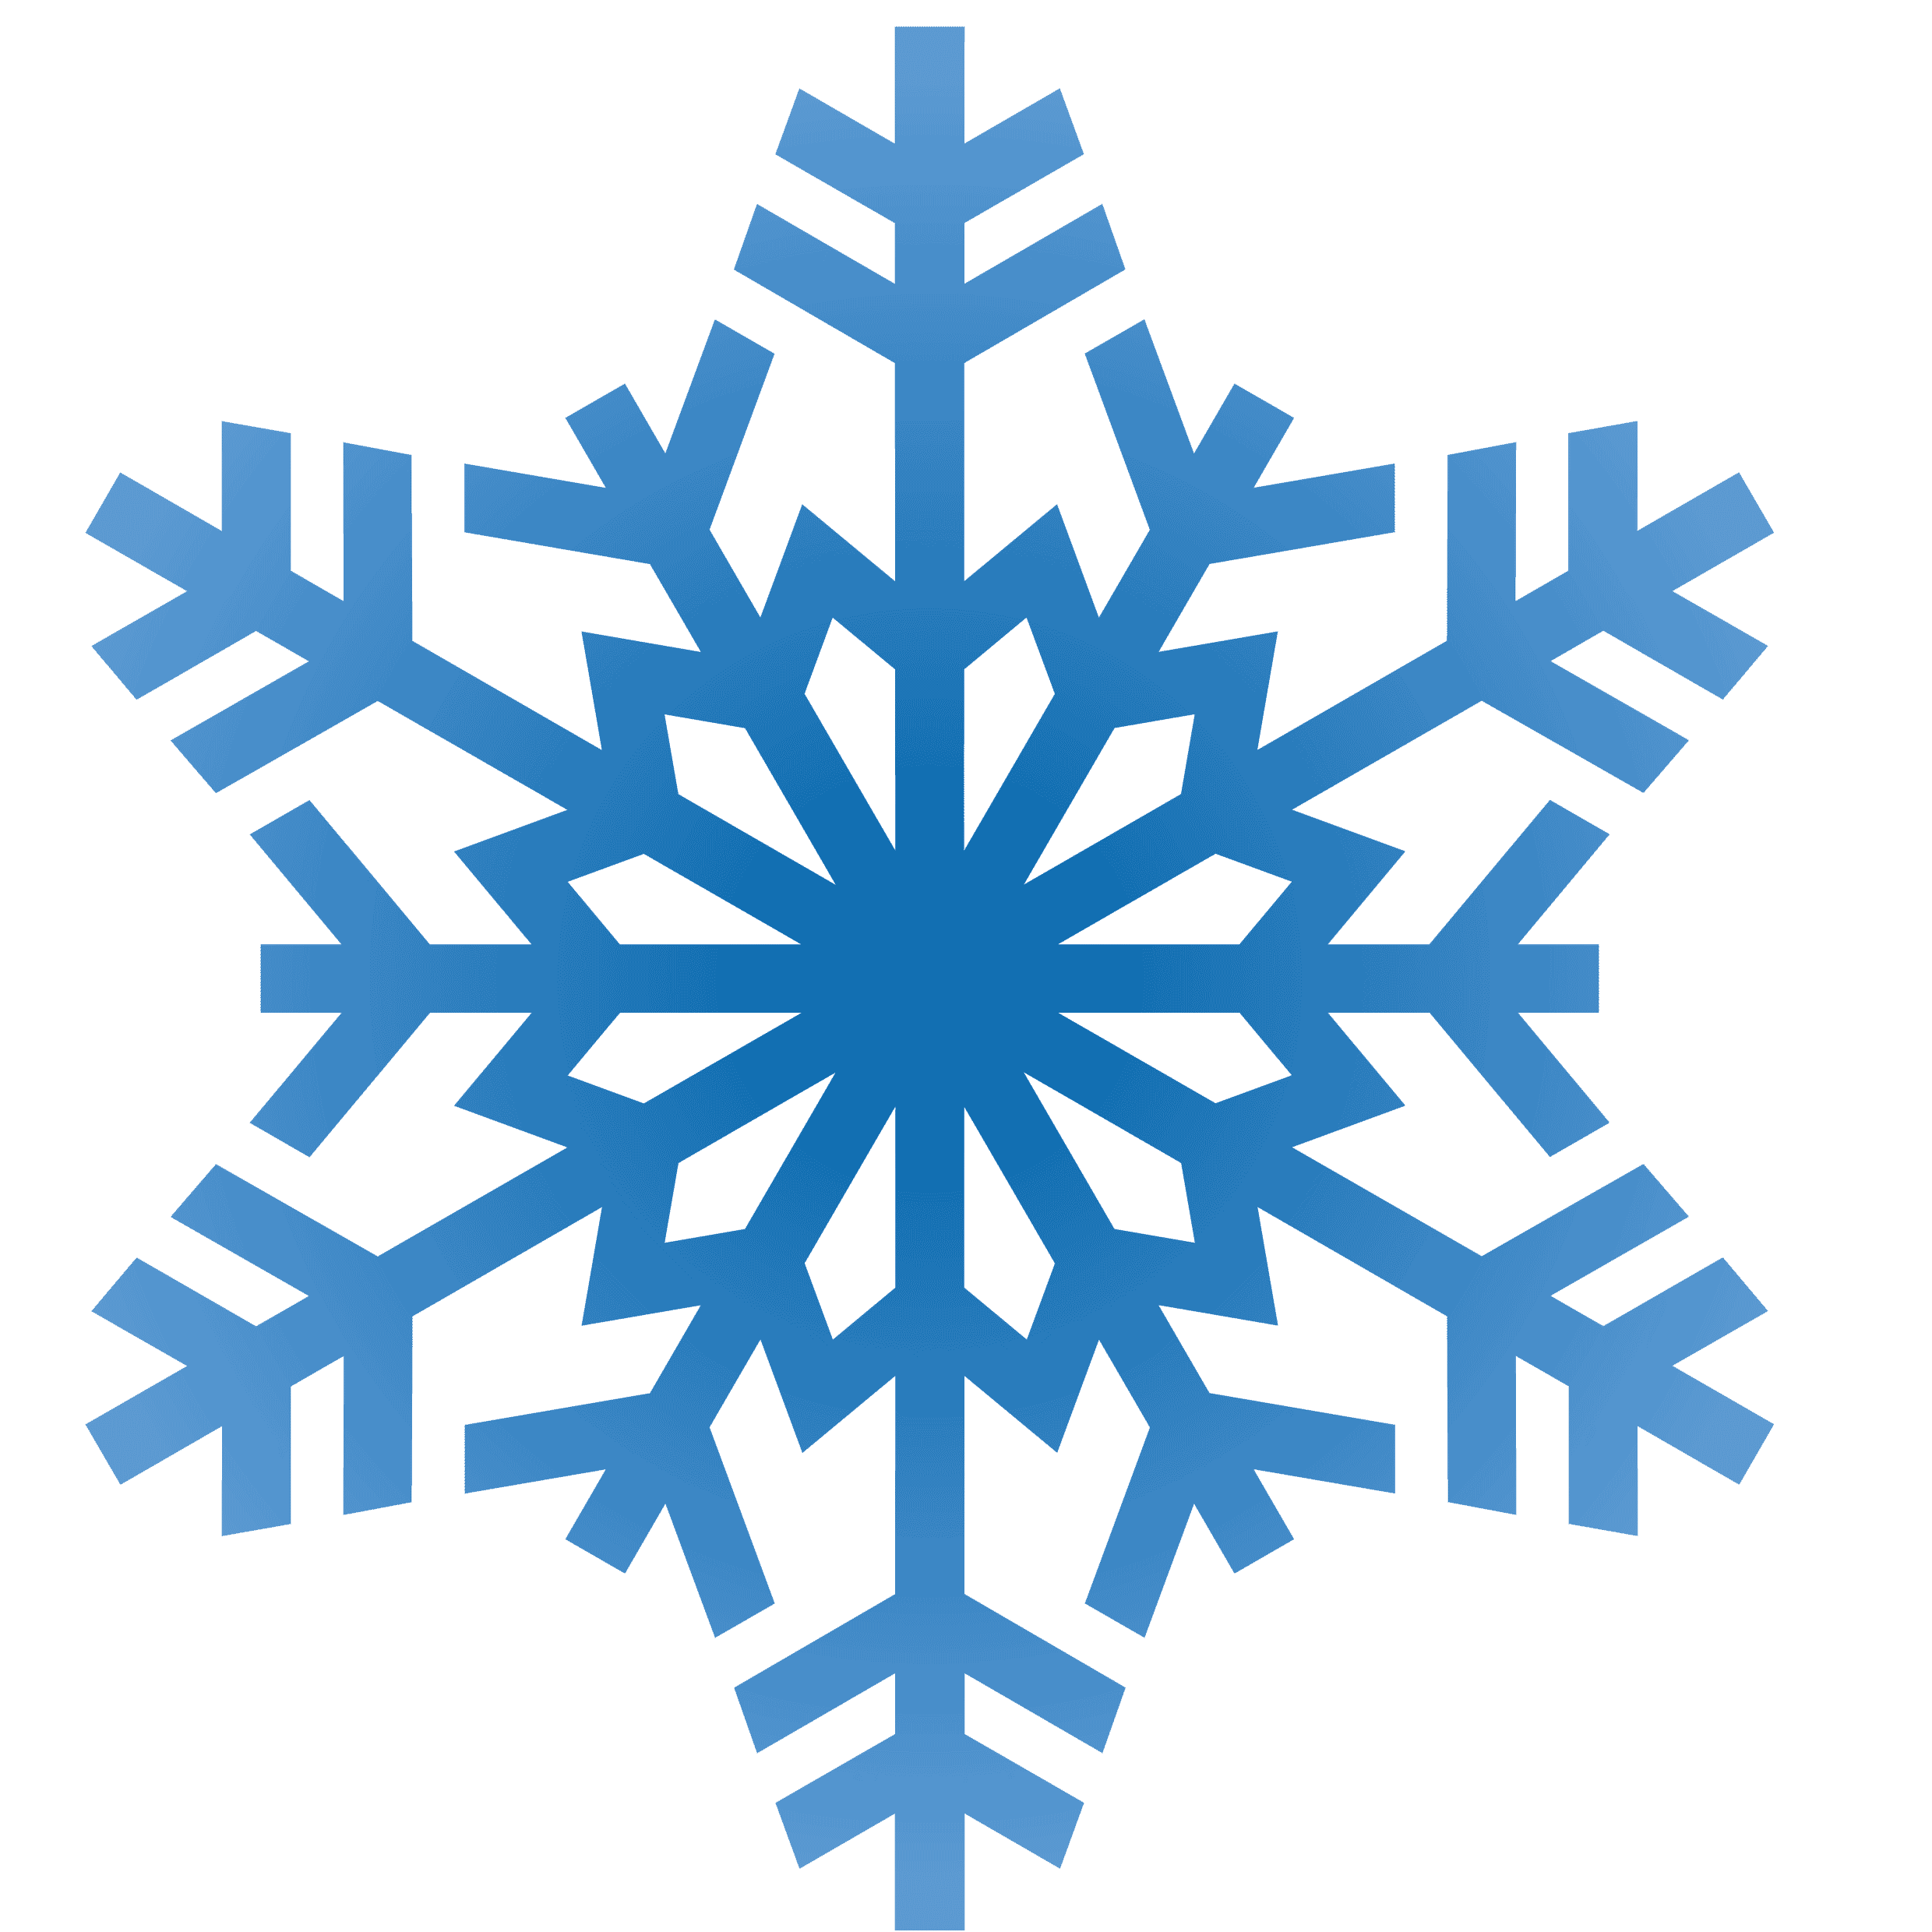 15 Snowflake Vector High Resolution Images